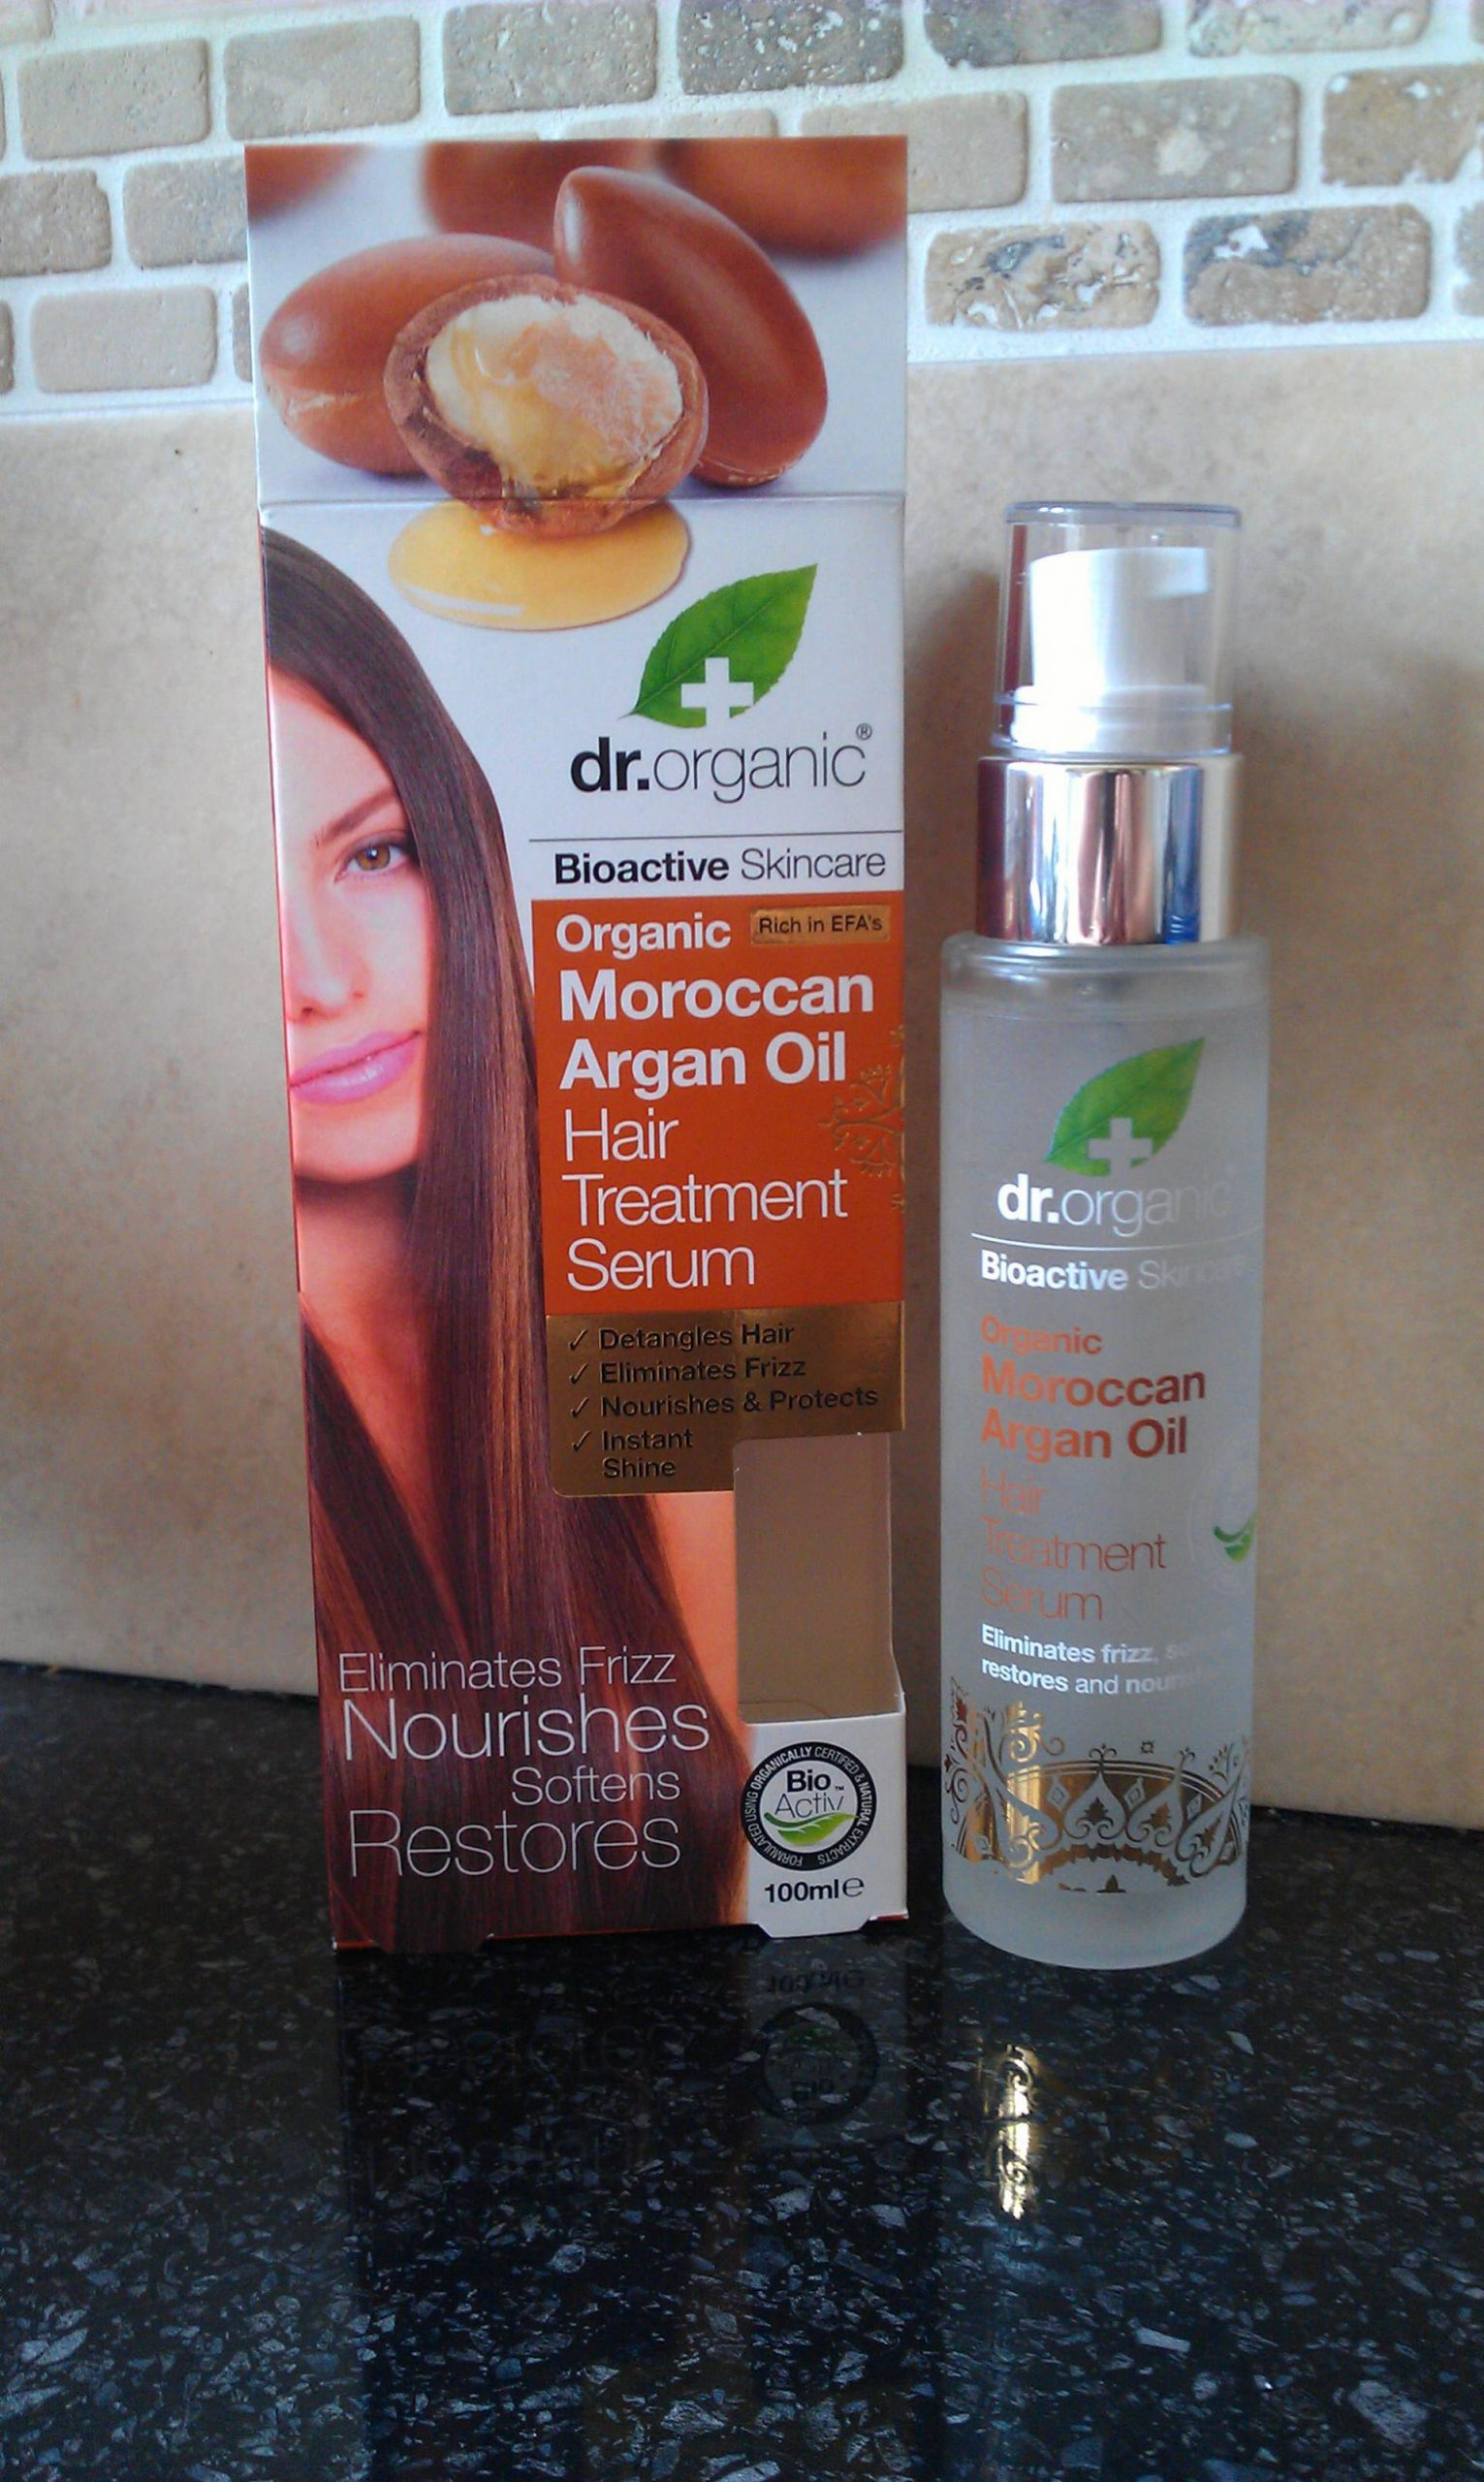 Dr Organic Argan Oil Hair Treatment Serum